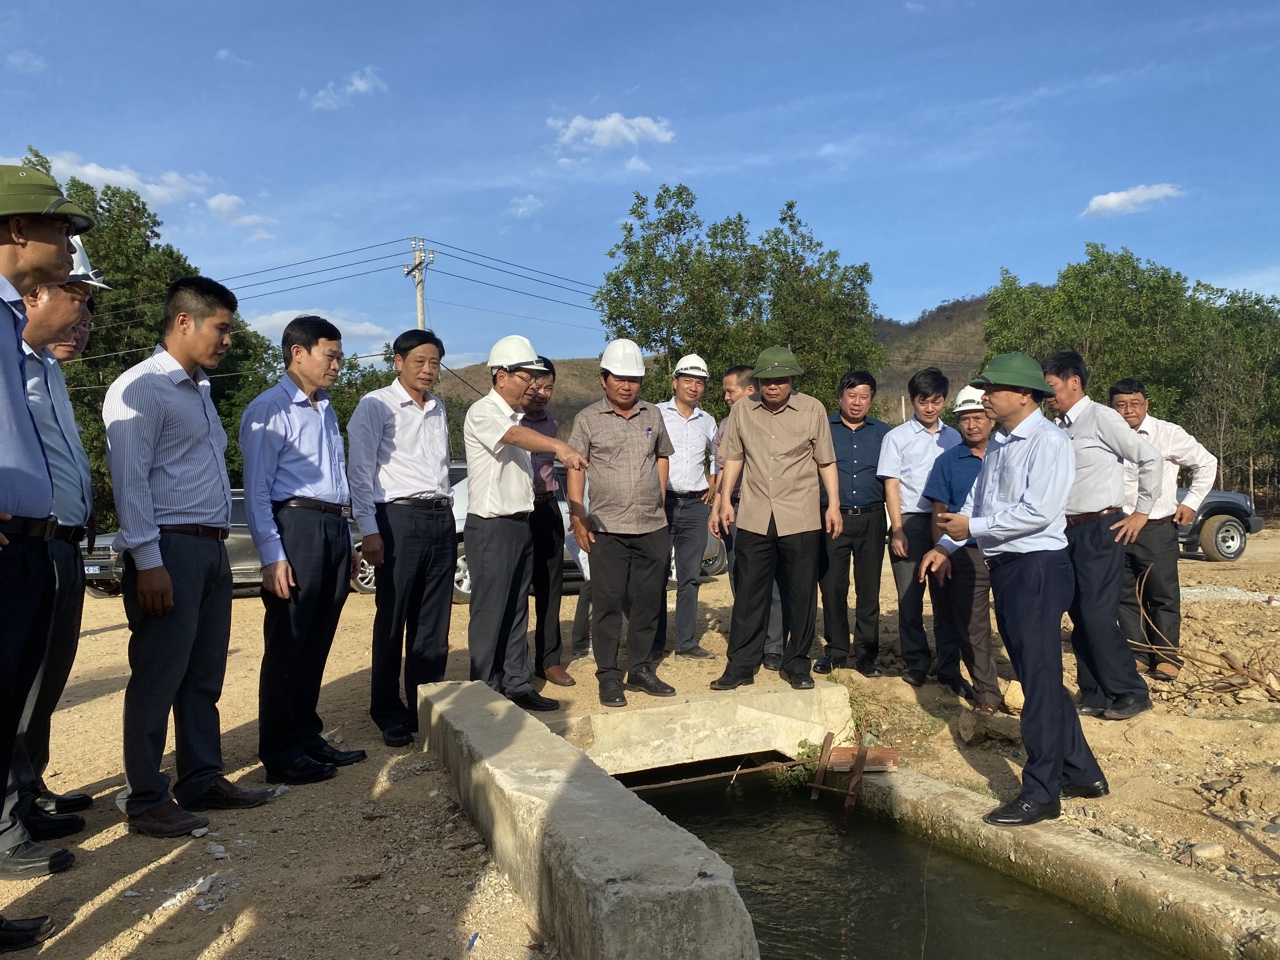 IWRP's leaders take part in a mission led by the Minister and Vice Minister of Agriculture and Rural Development to Ninh Thuan and Binh Thuan Provinces (May 23-25, 2020)